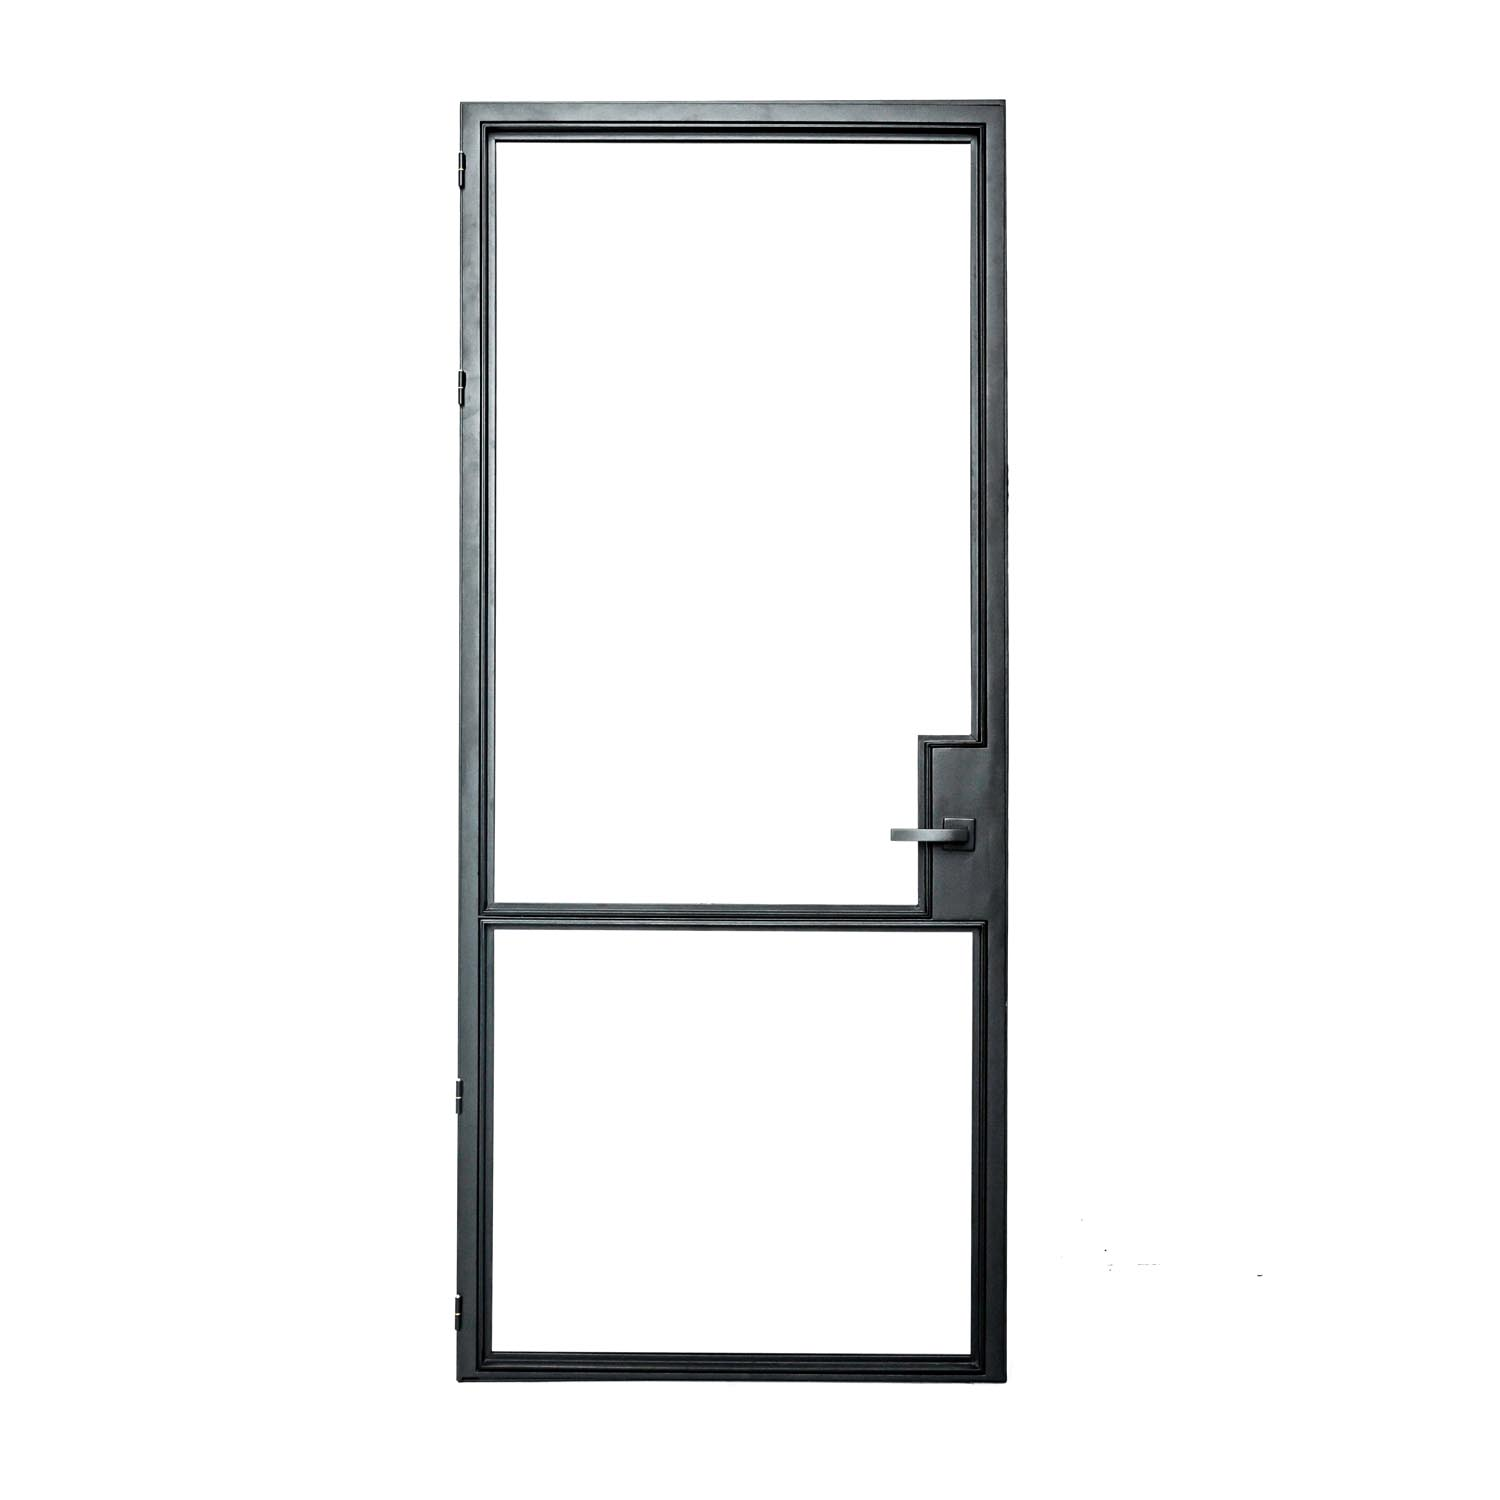 Form and Alloy - Steel Door Frame: Oberon